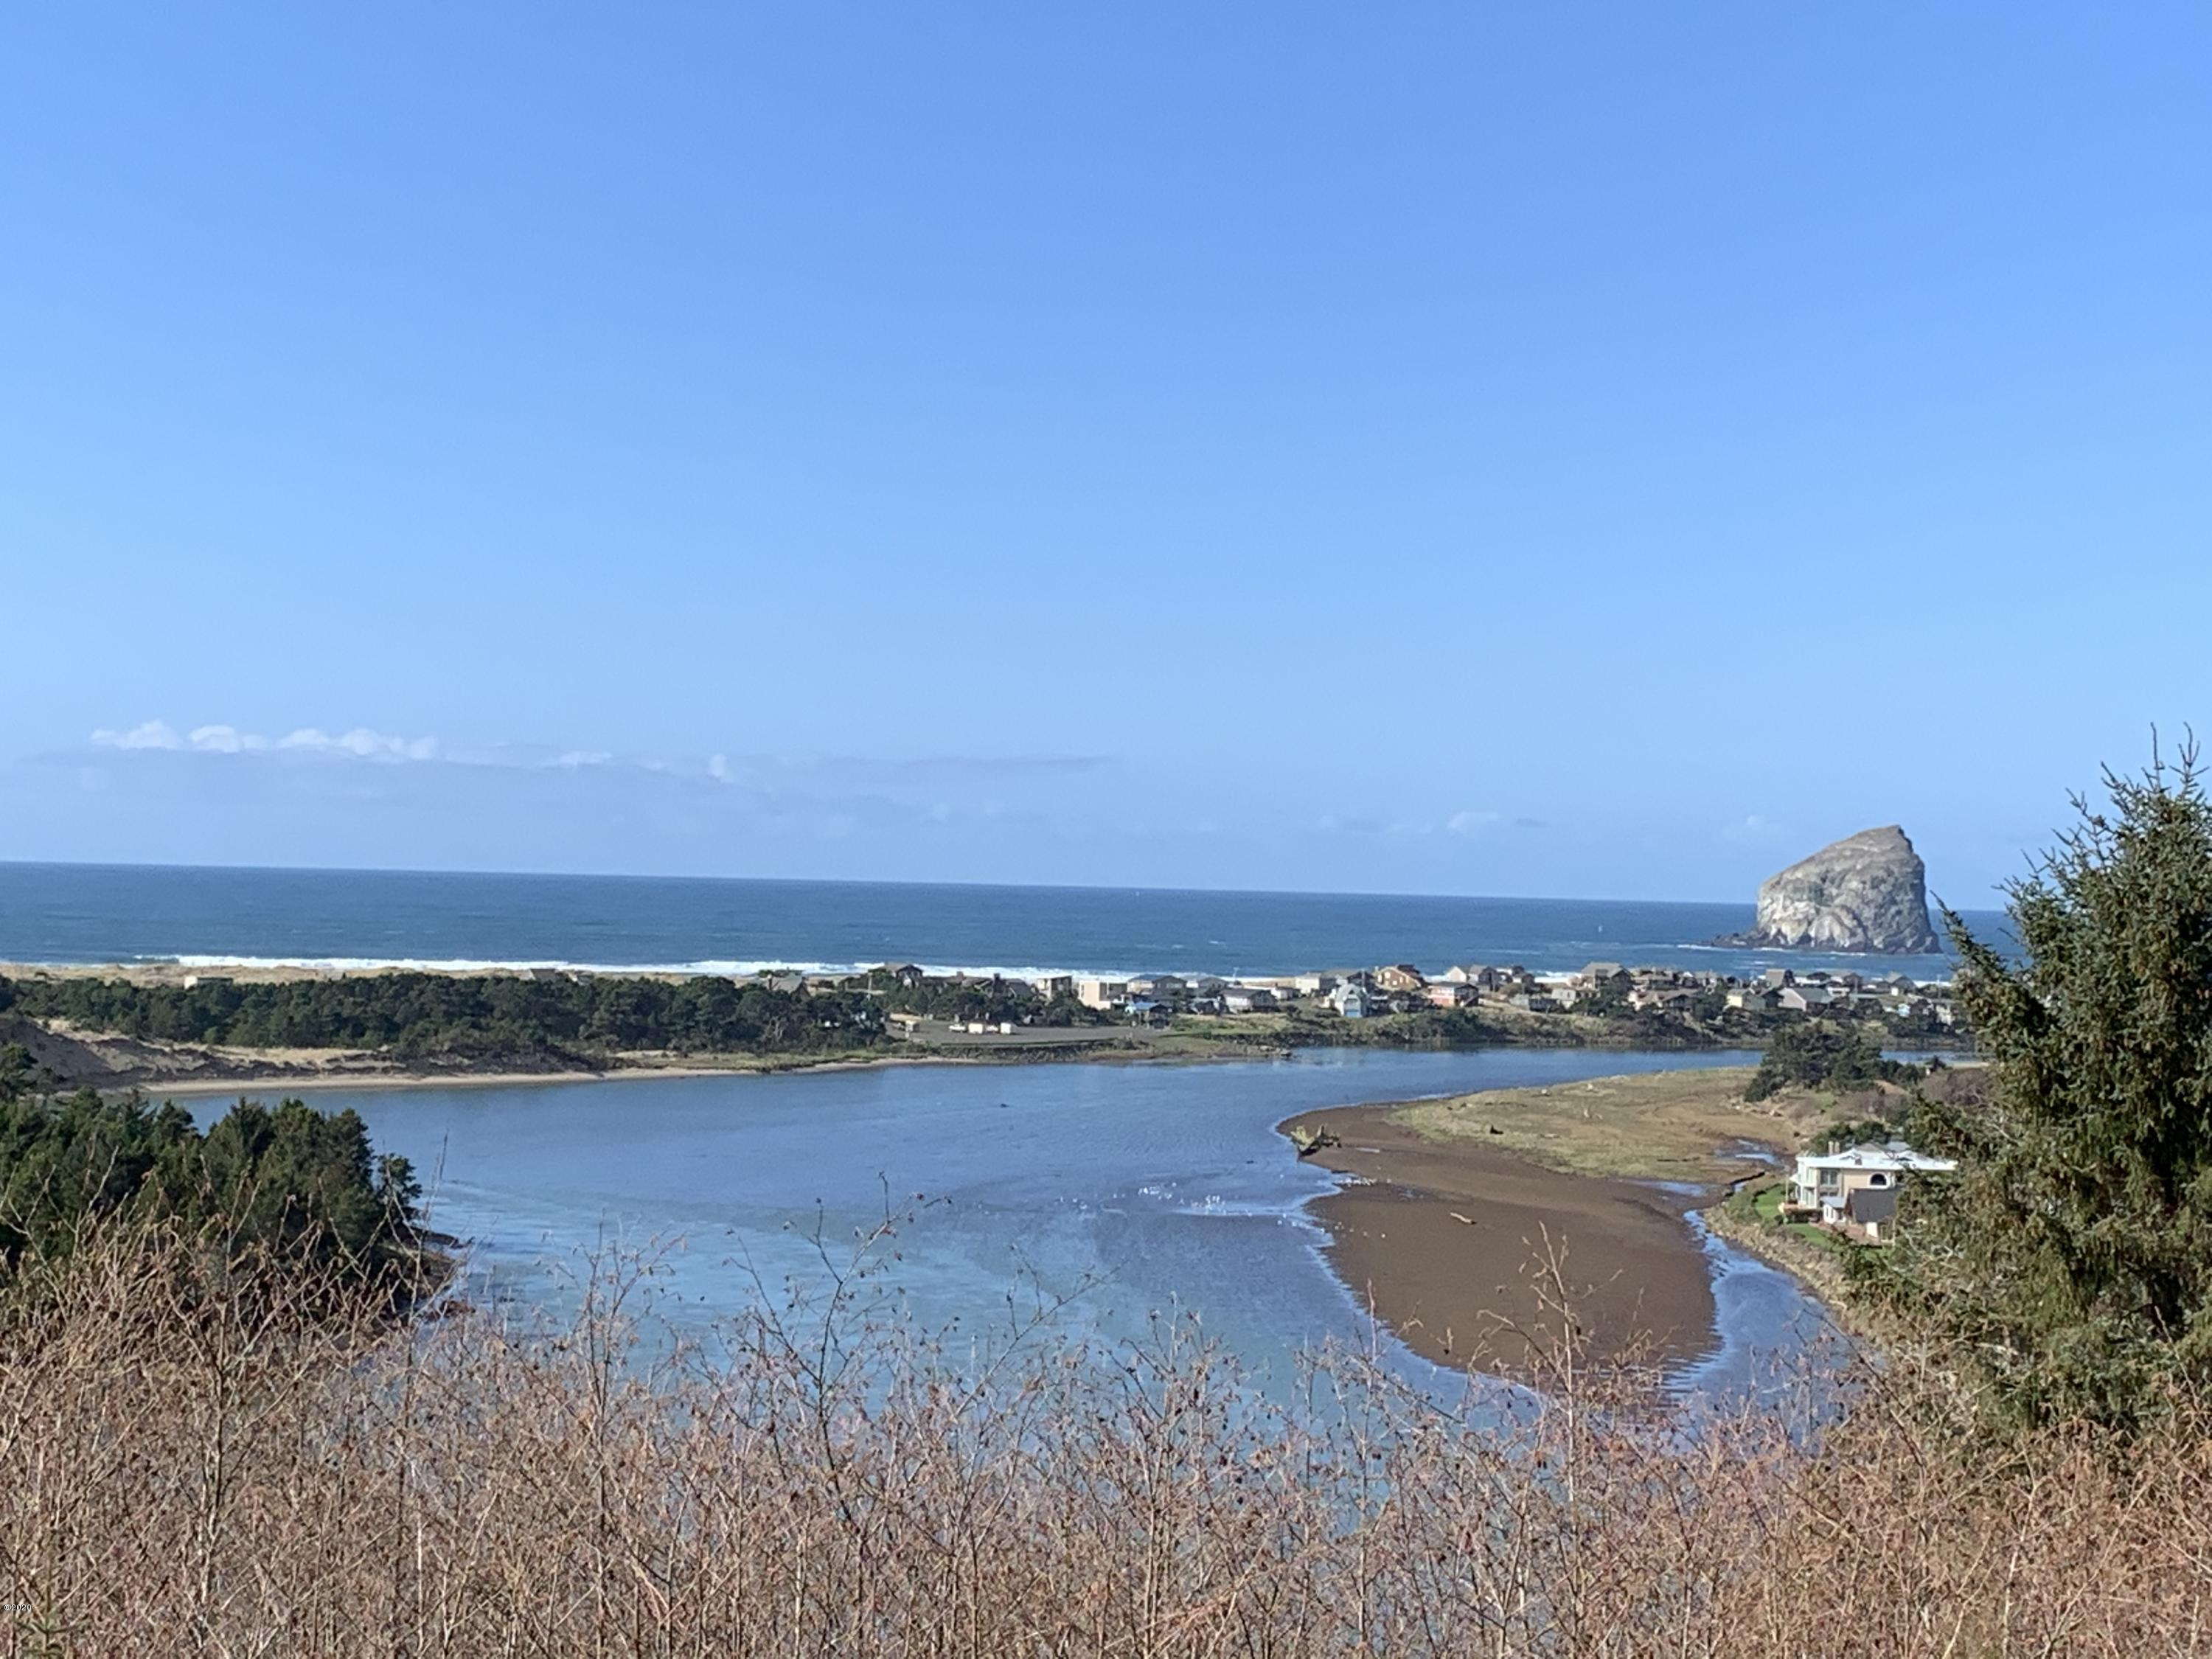 LOT 59 Kingfisher Loop, Pacific City, OR 97135 - Lot 59